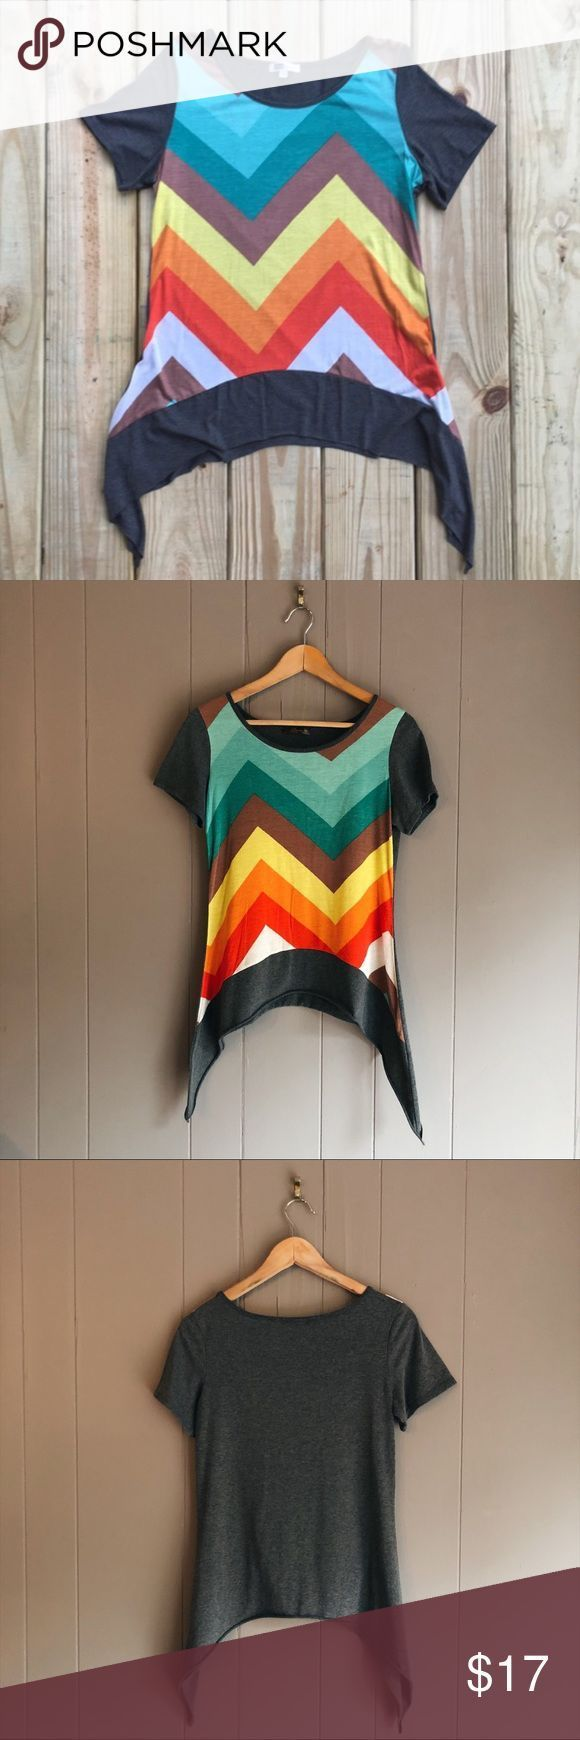 Rainbow Chevron Shark-bite Hem Tee Very cute and colorful T-shirt in excellent c…